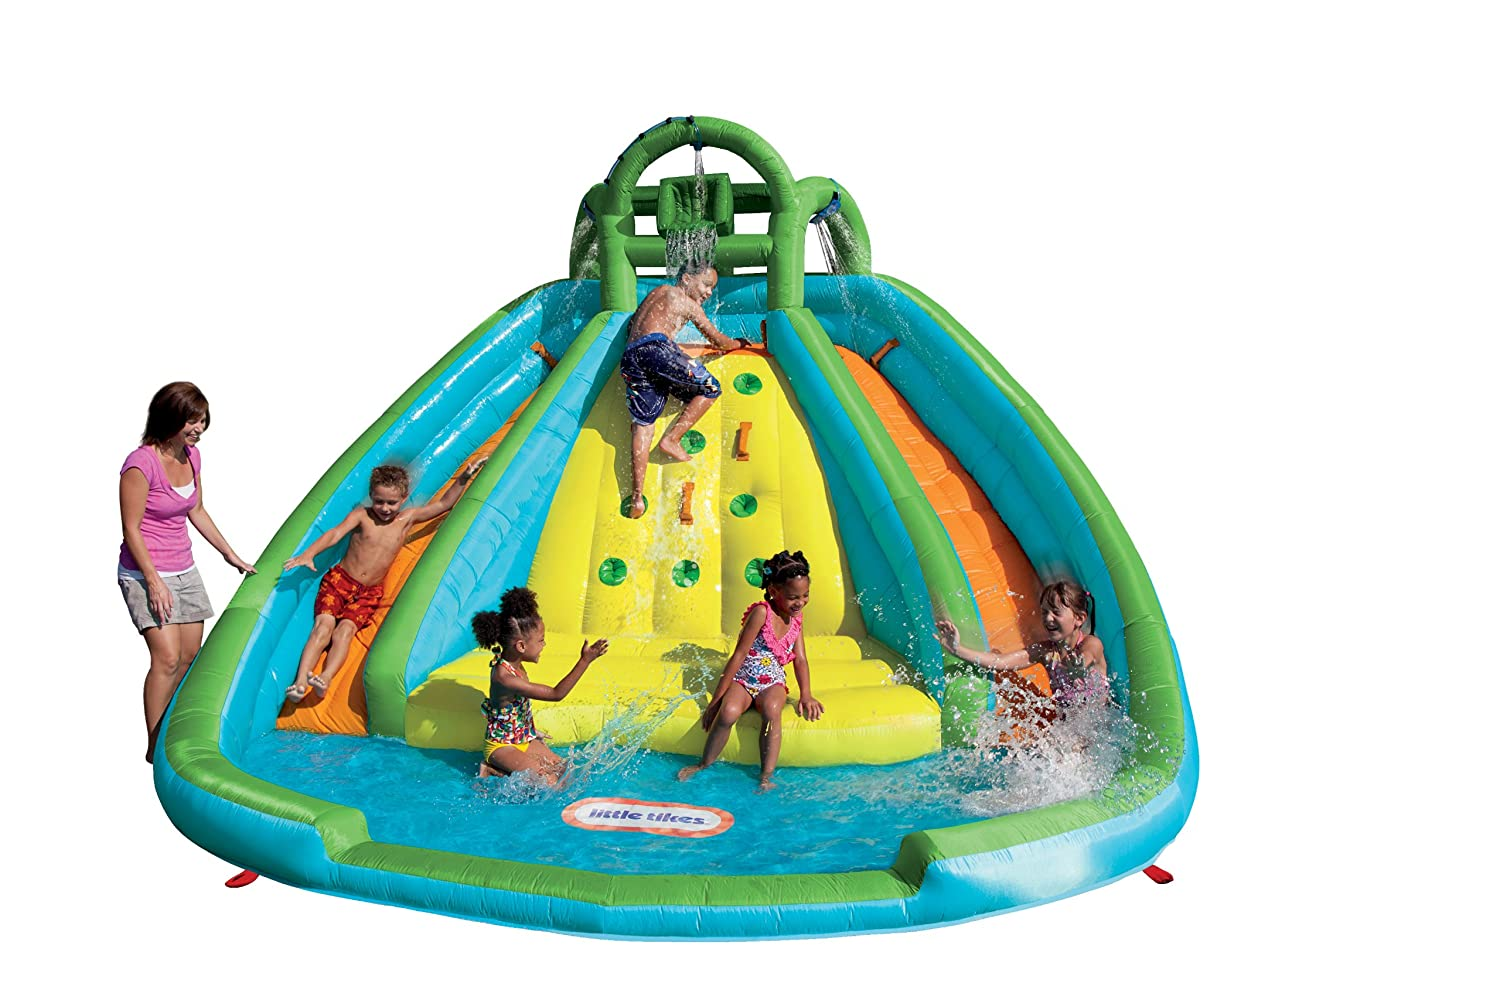 Top 7 Best Water Slide Pools Inflatable (2019 Reviews) 2